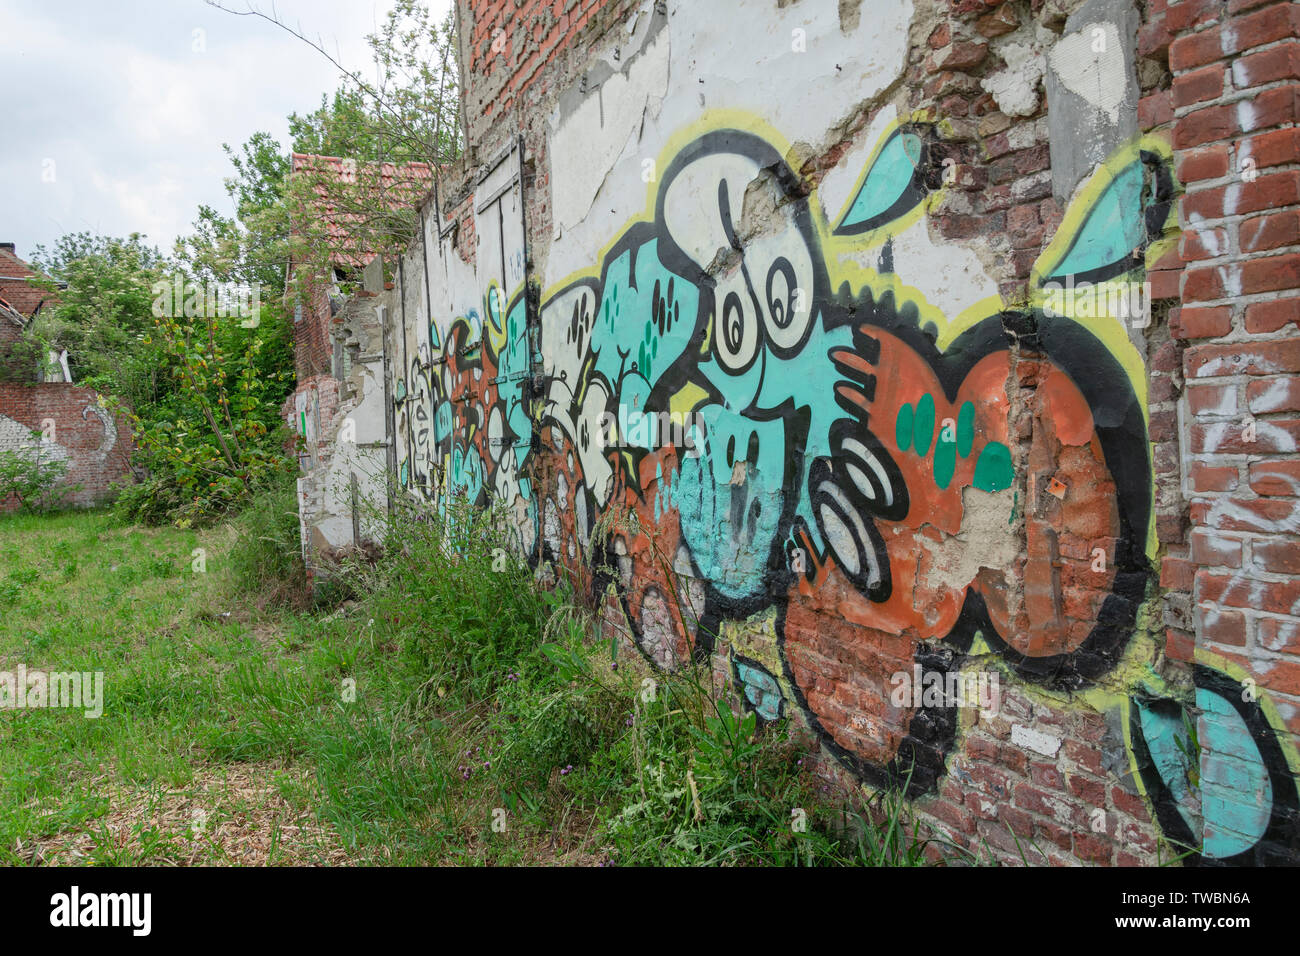 Doel, Belgium 10 June 2019, A wall full of graffiti in an abandoned village near the nuclear power station - Stock Image